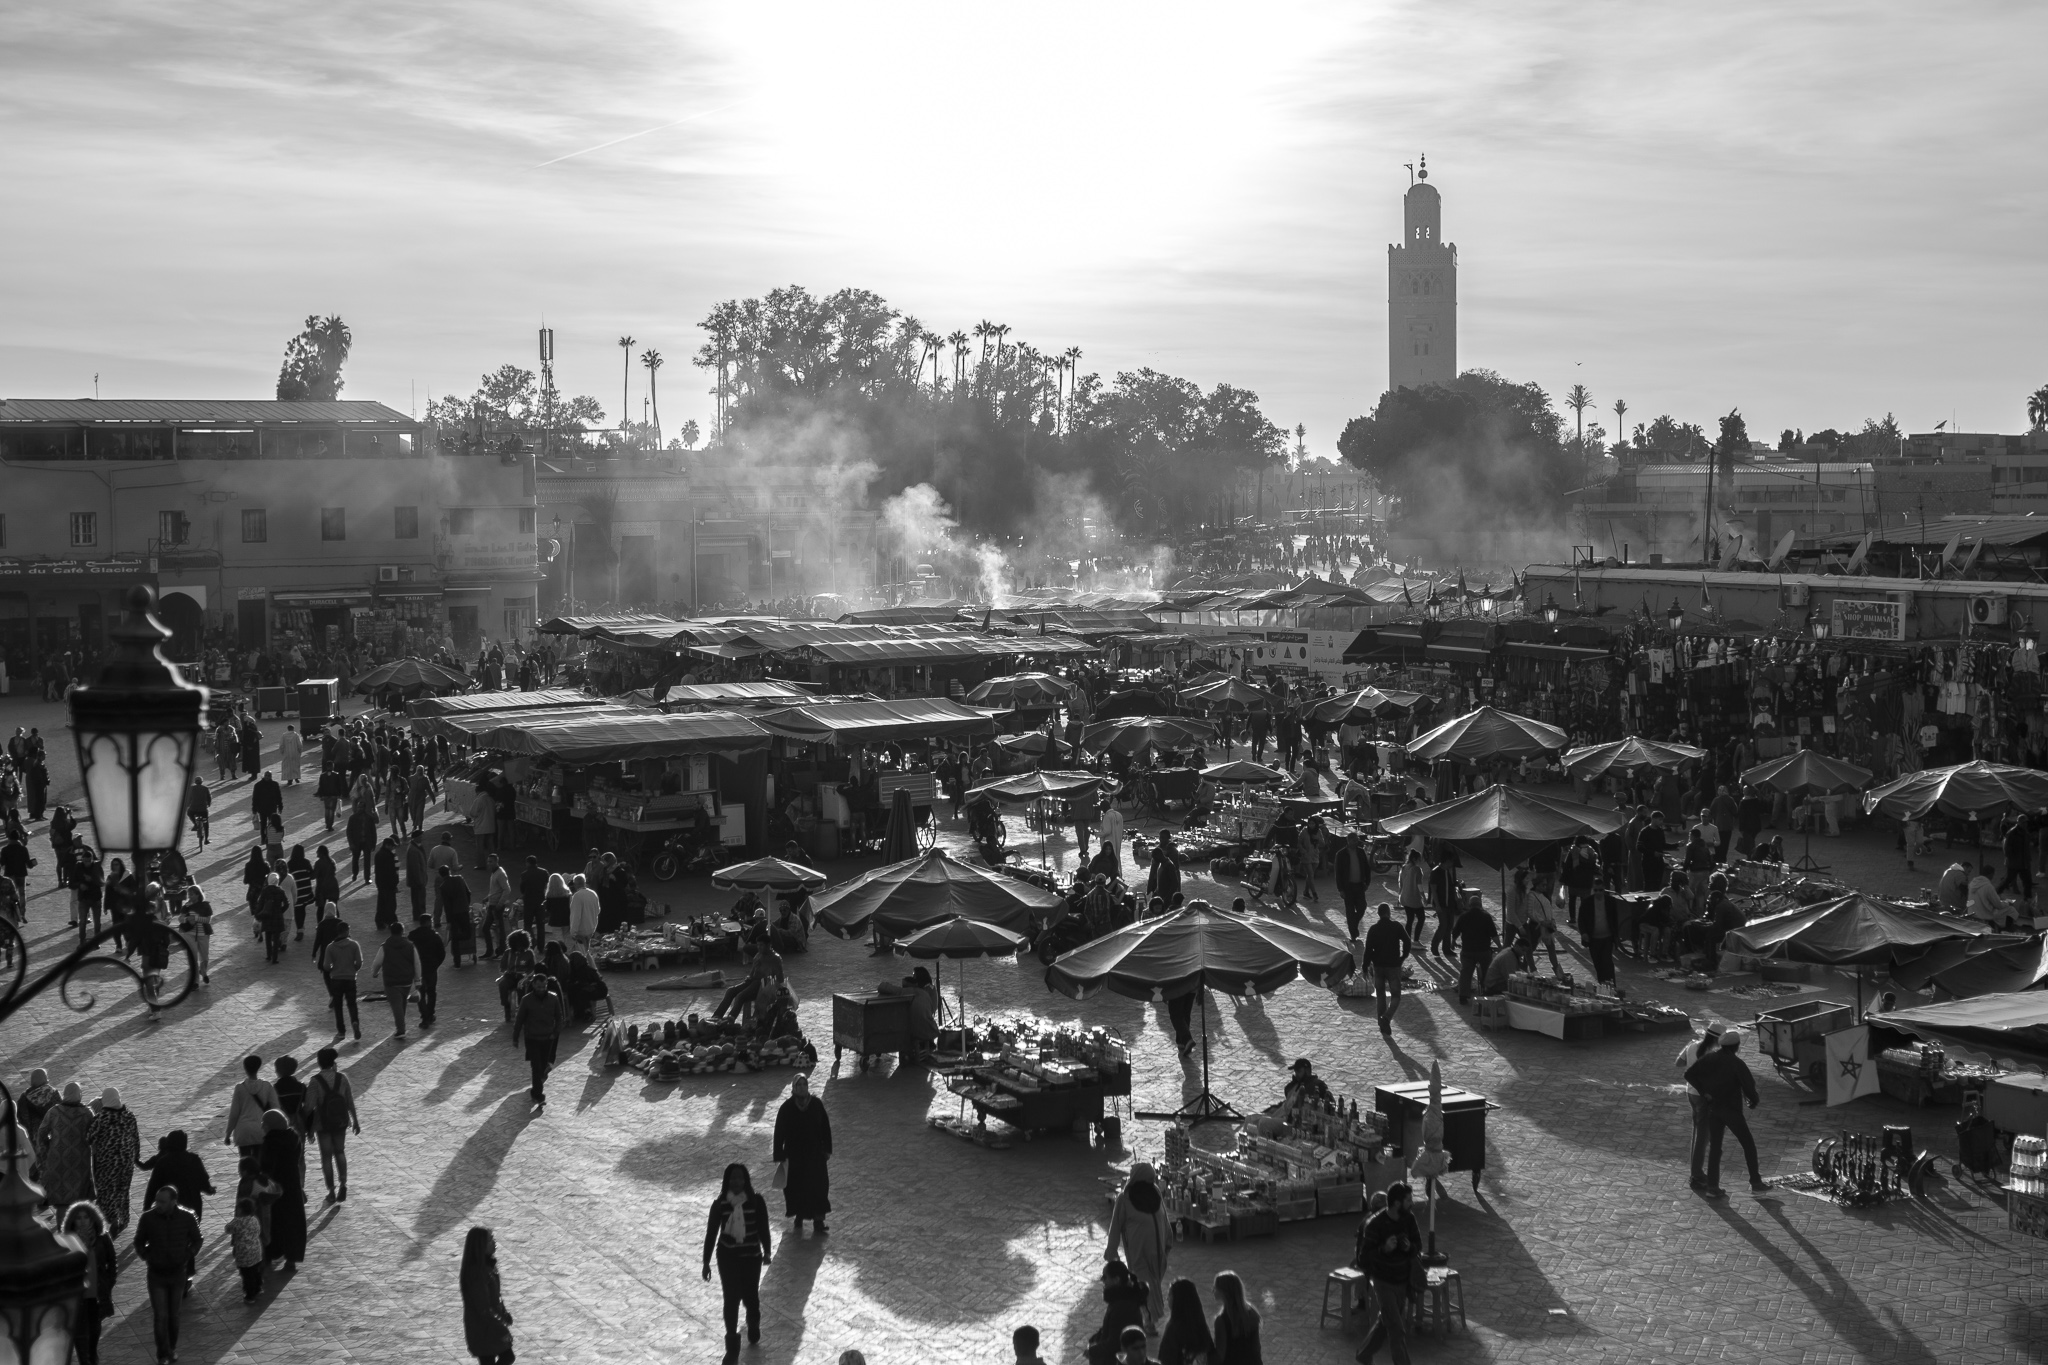 The square Yamaa el Fna, or Jemaa el-Fna, is the main square and most emblematic place of the whole Medina of Marrakech. <br>The square forms the heart of the bustling city and its center of life. <br>Within walking distance of the square we can find the mosque of the Koutoubia, a building for the Islamic cult and one of the most representative buildings of Almohad art.